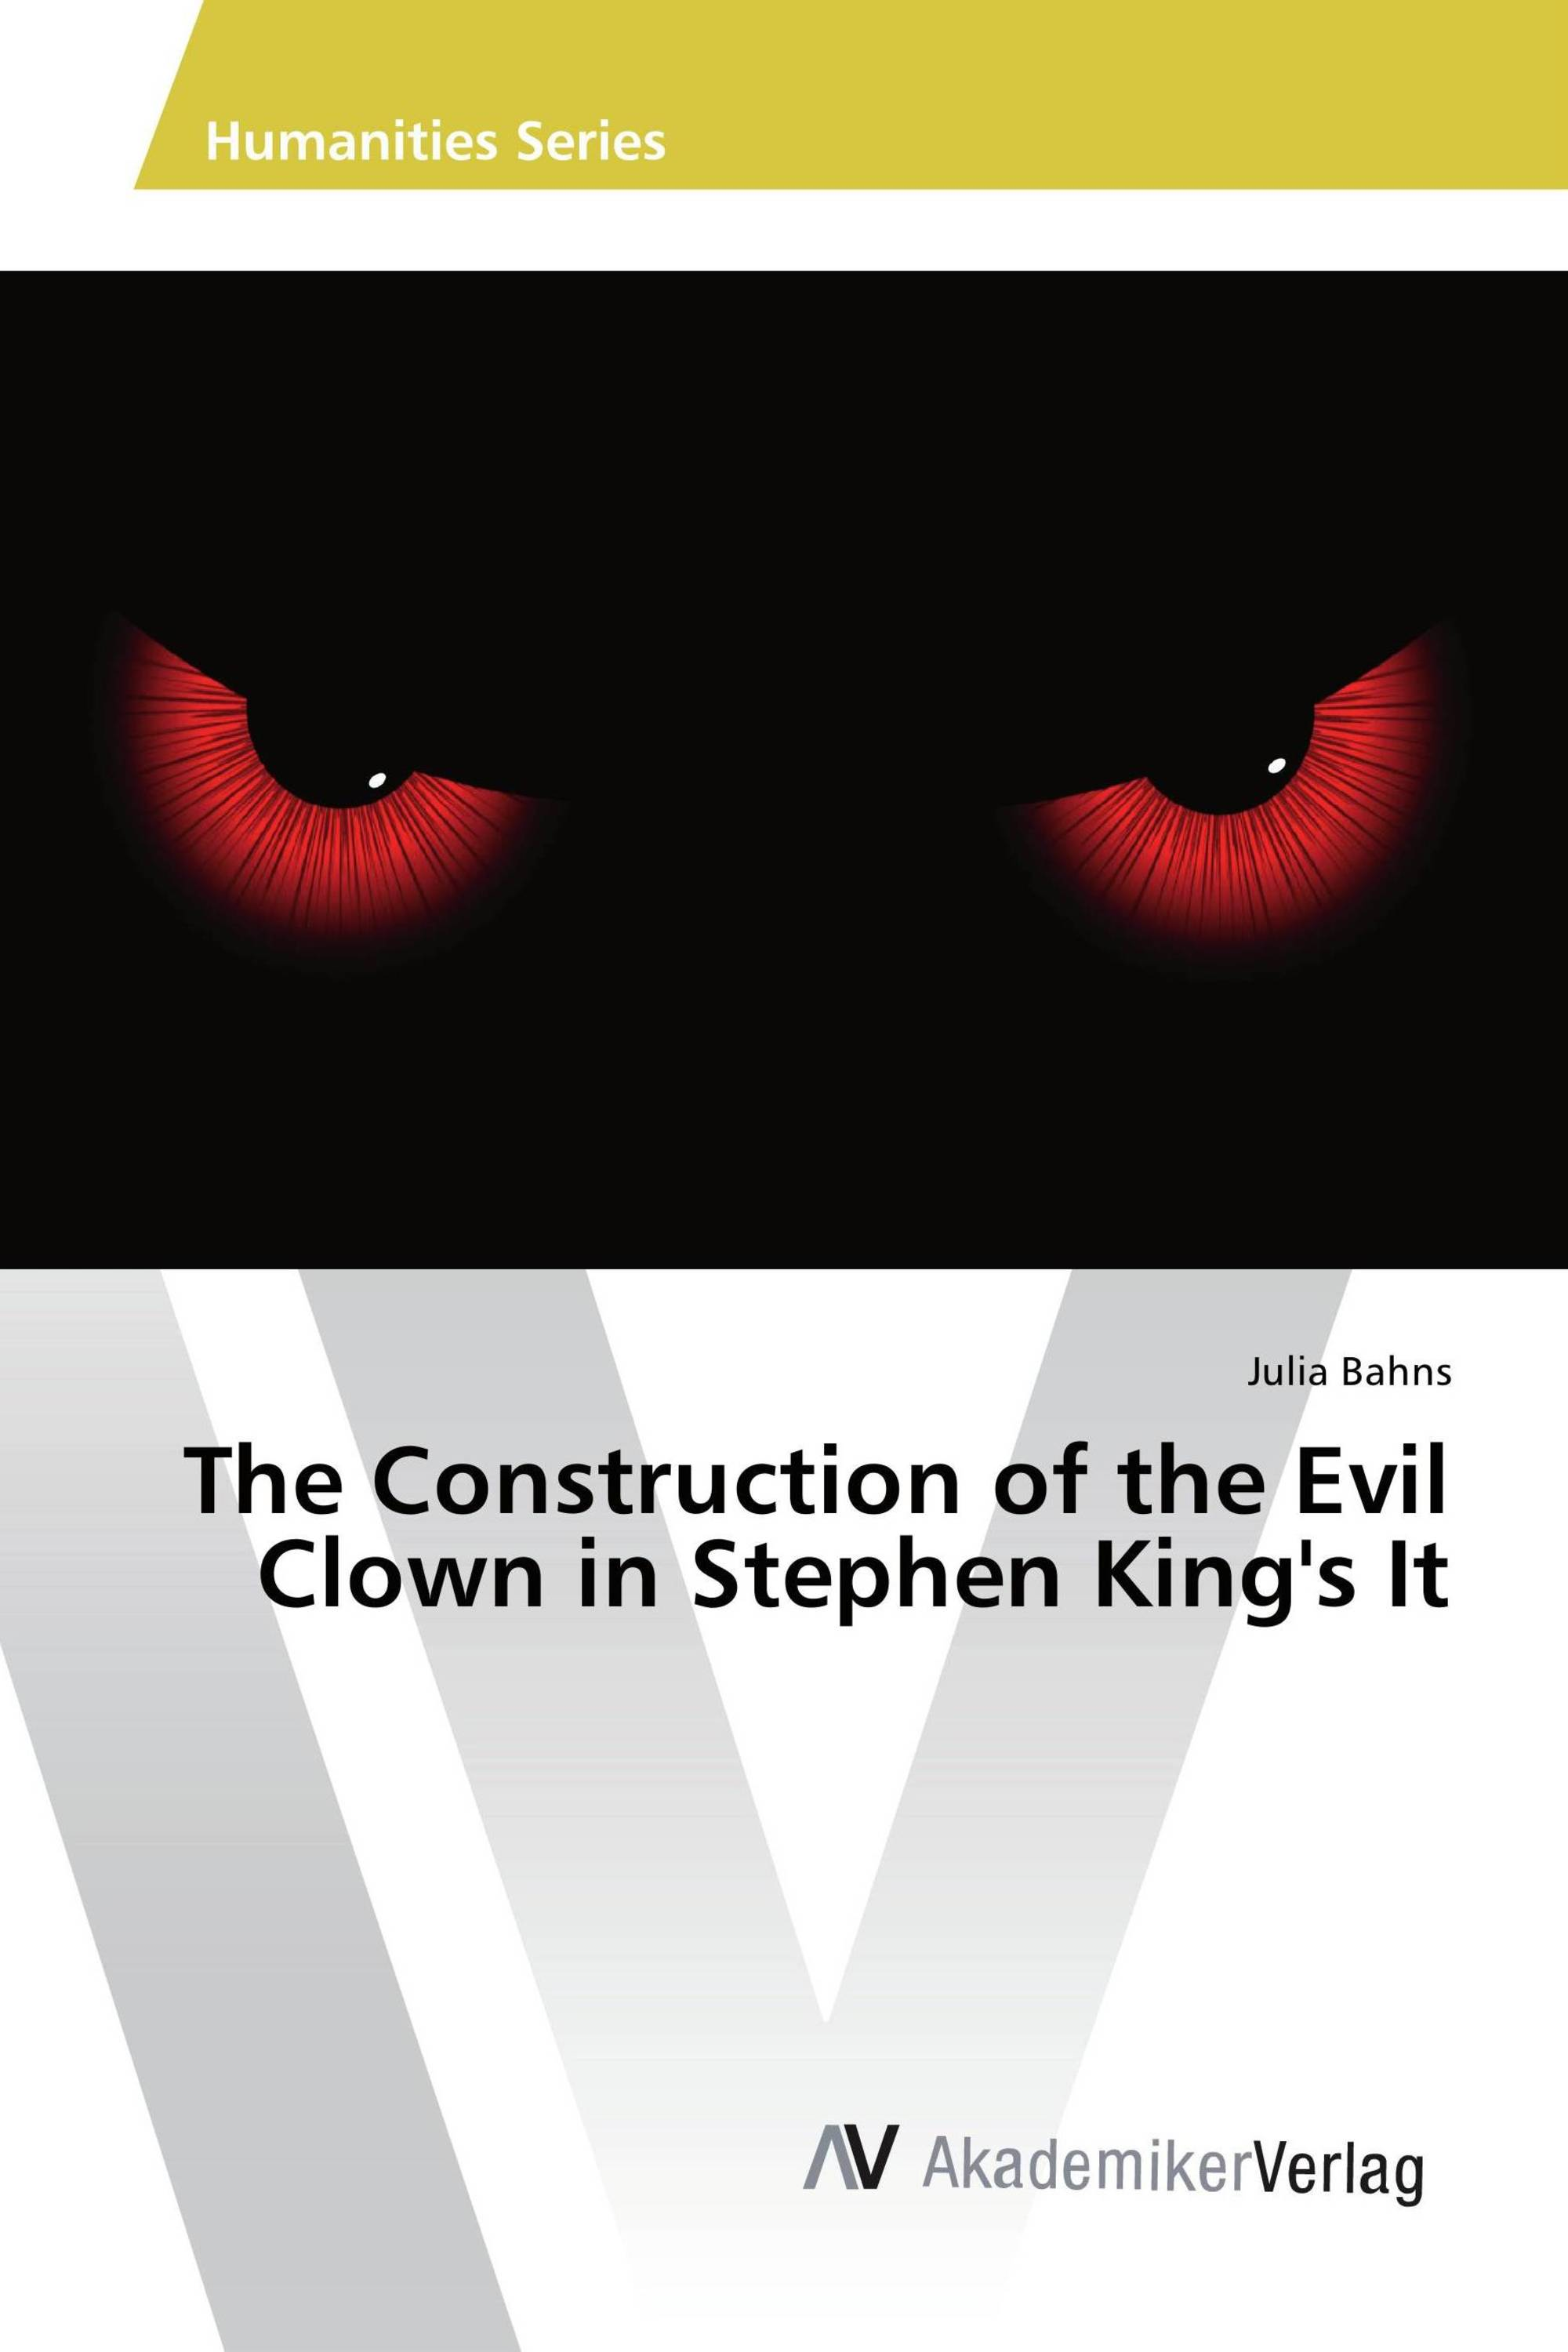 The Construction of the Evil Clown in Stephen King's It